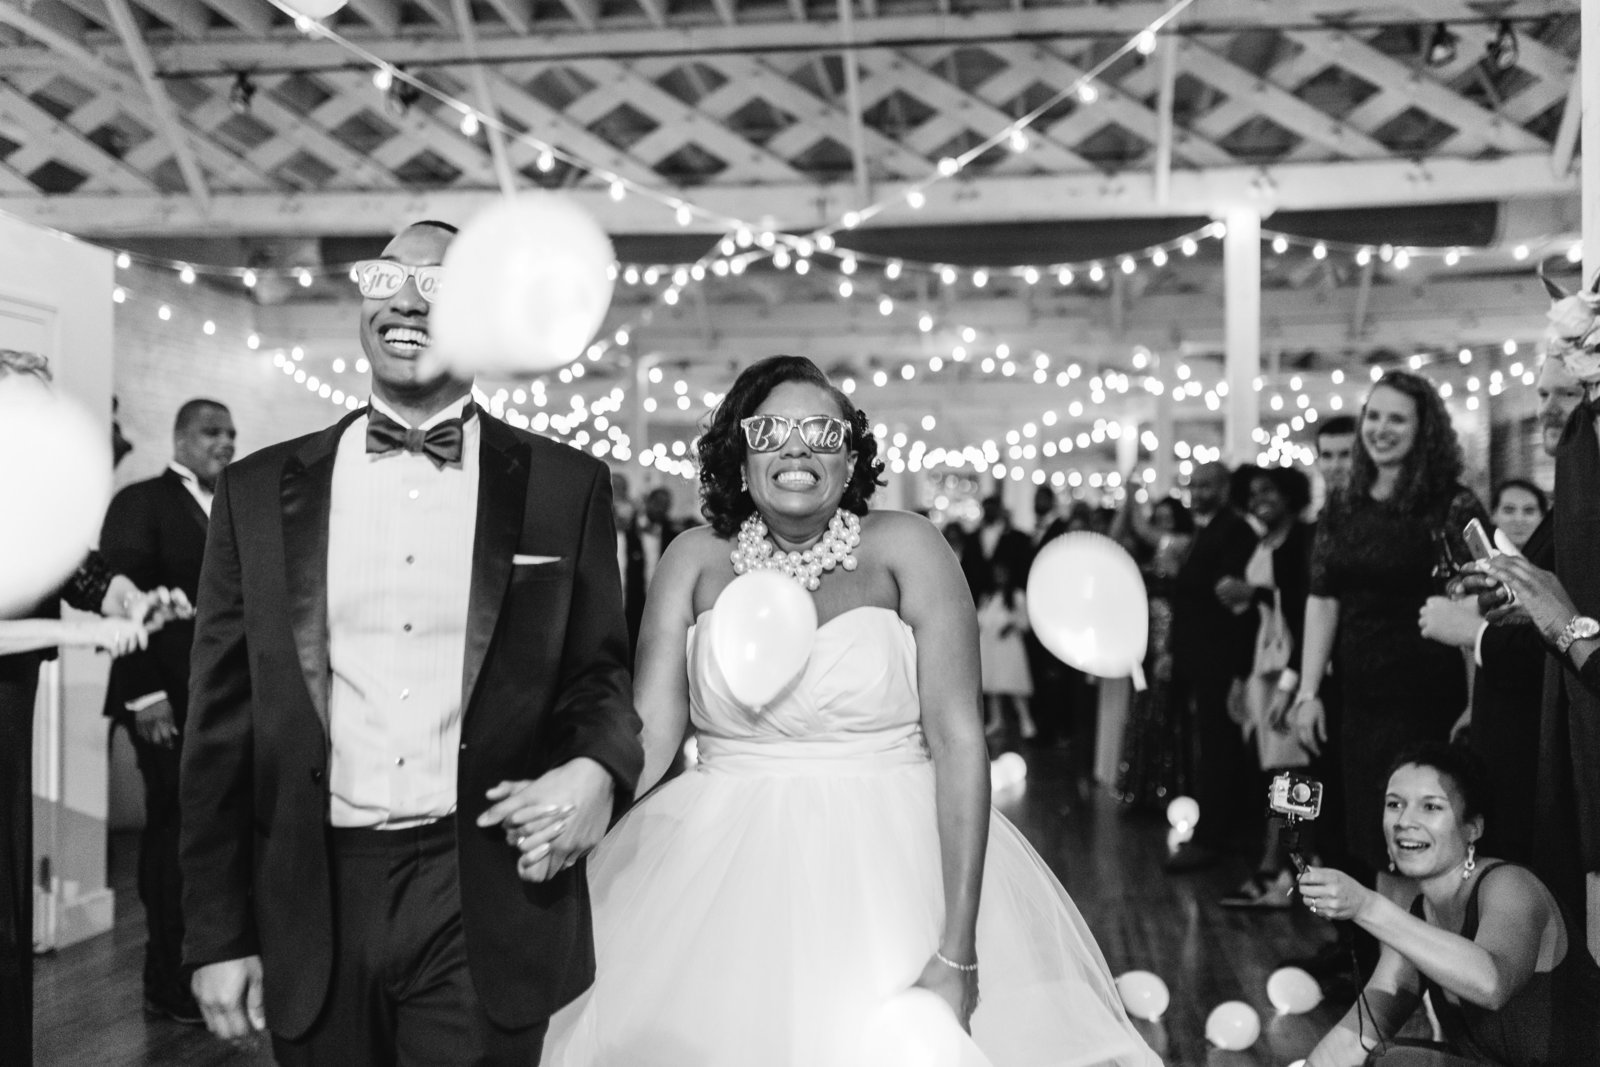 LED exit with balloons at wedding